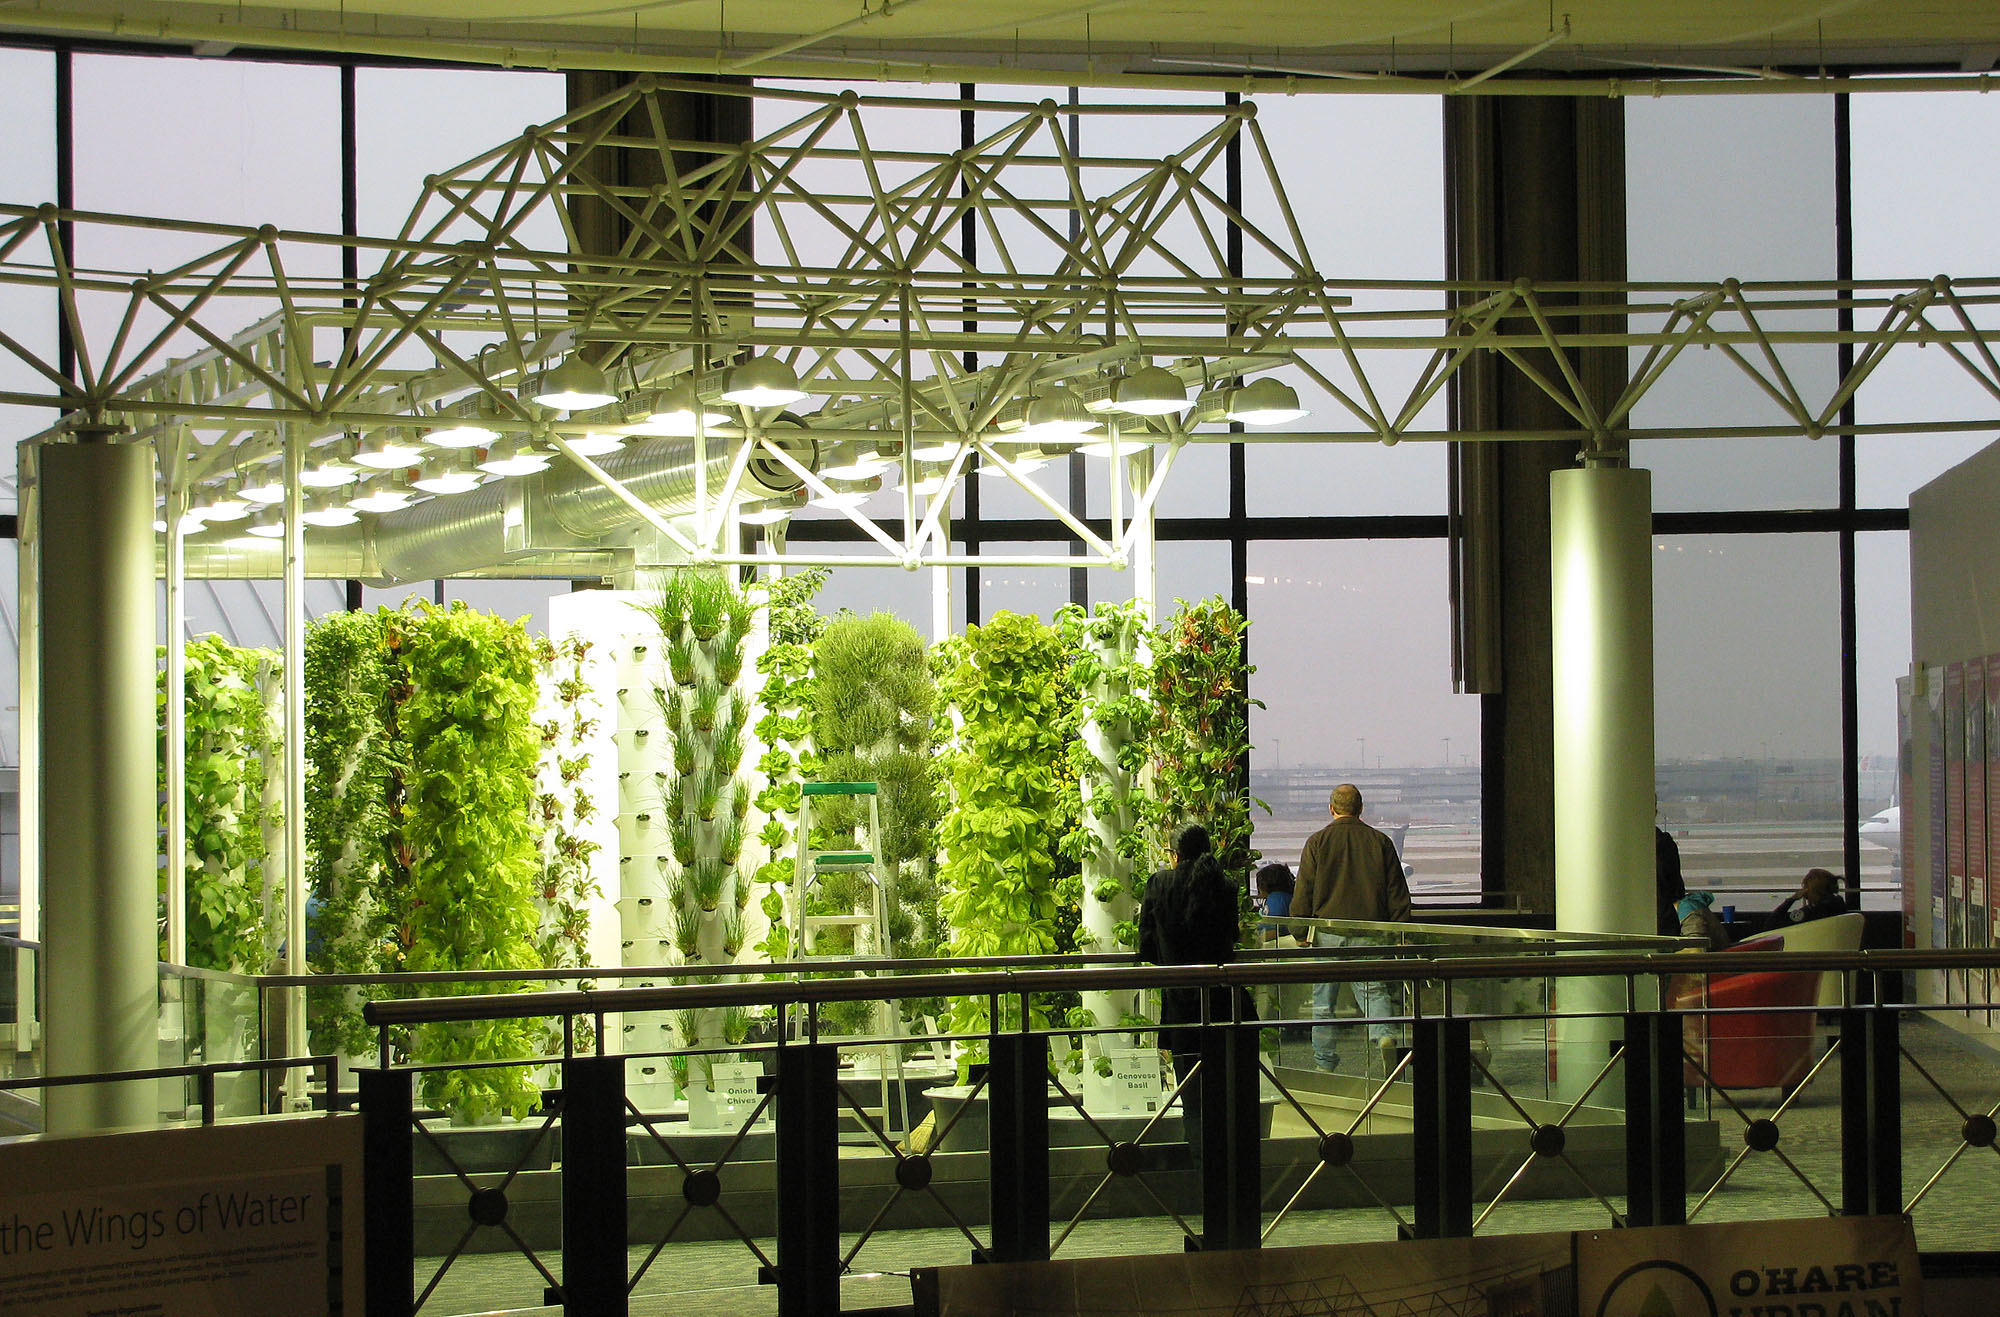 Aeroponic gardening provides restaurants with fresh produce at O'Hare Airport